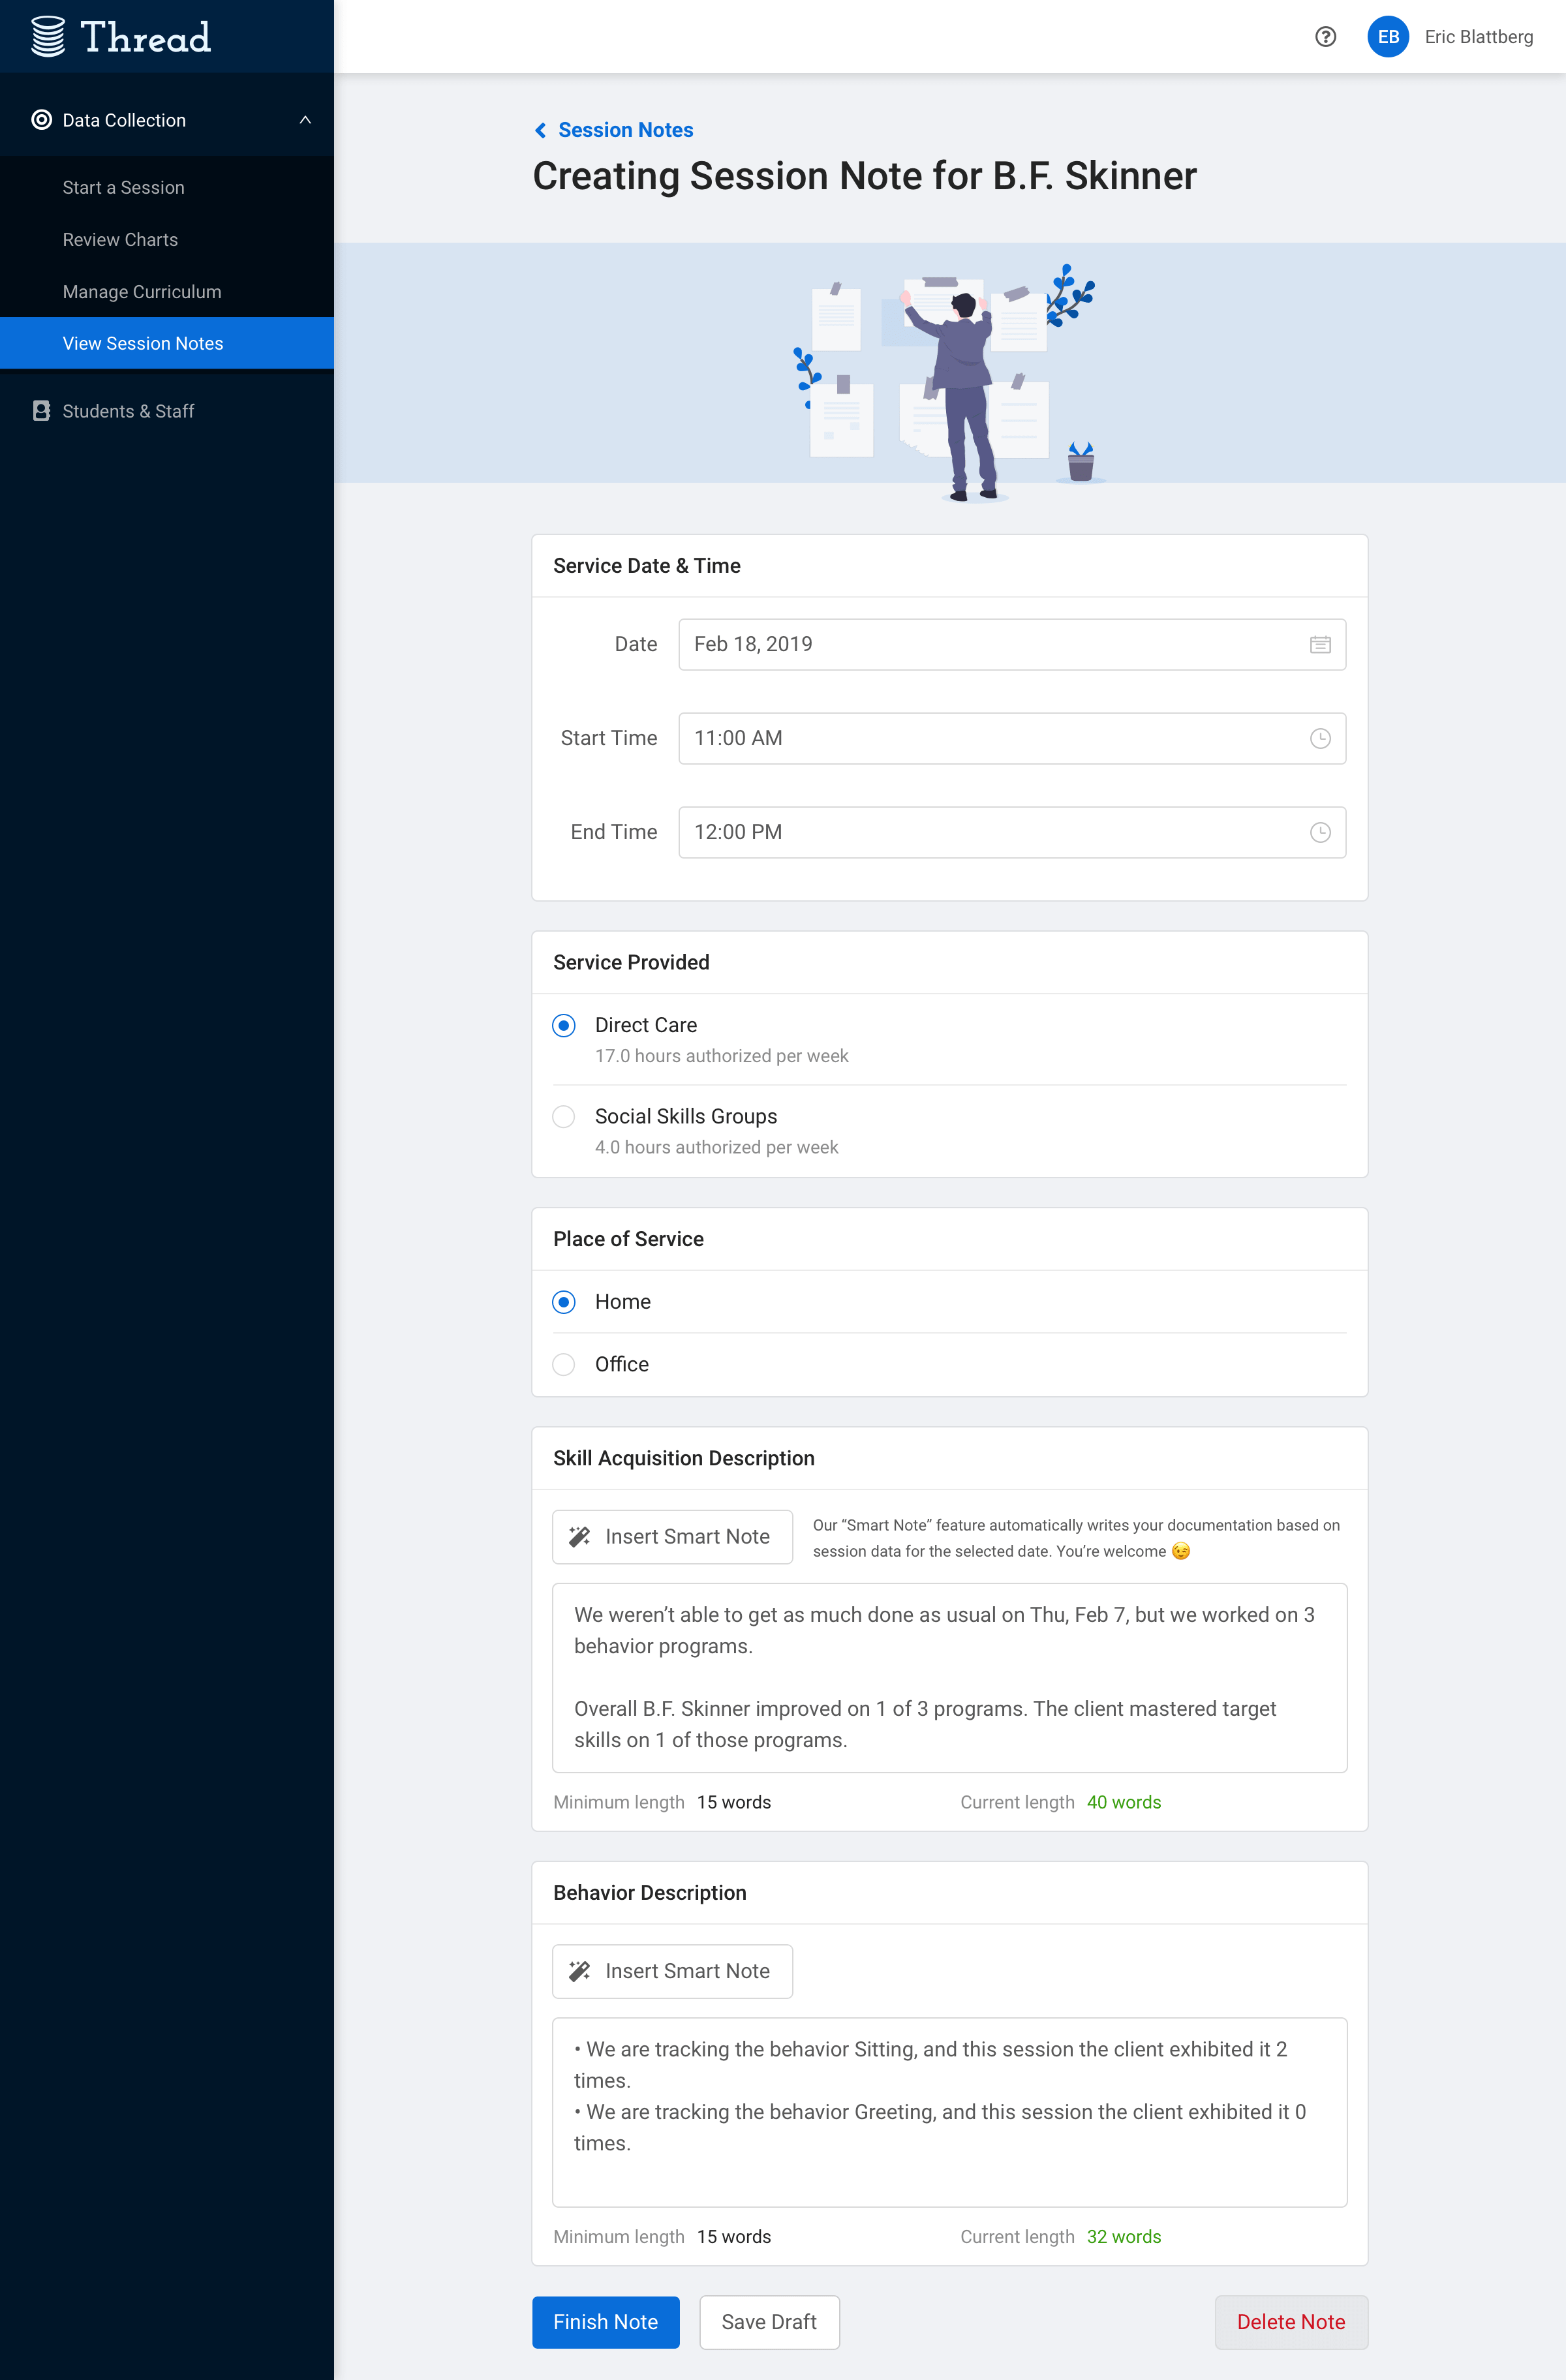 A mockup of Thread's session notes feature, which enables users to automatically generate session notes using the platform's data